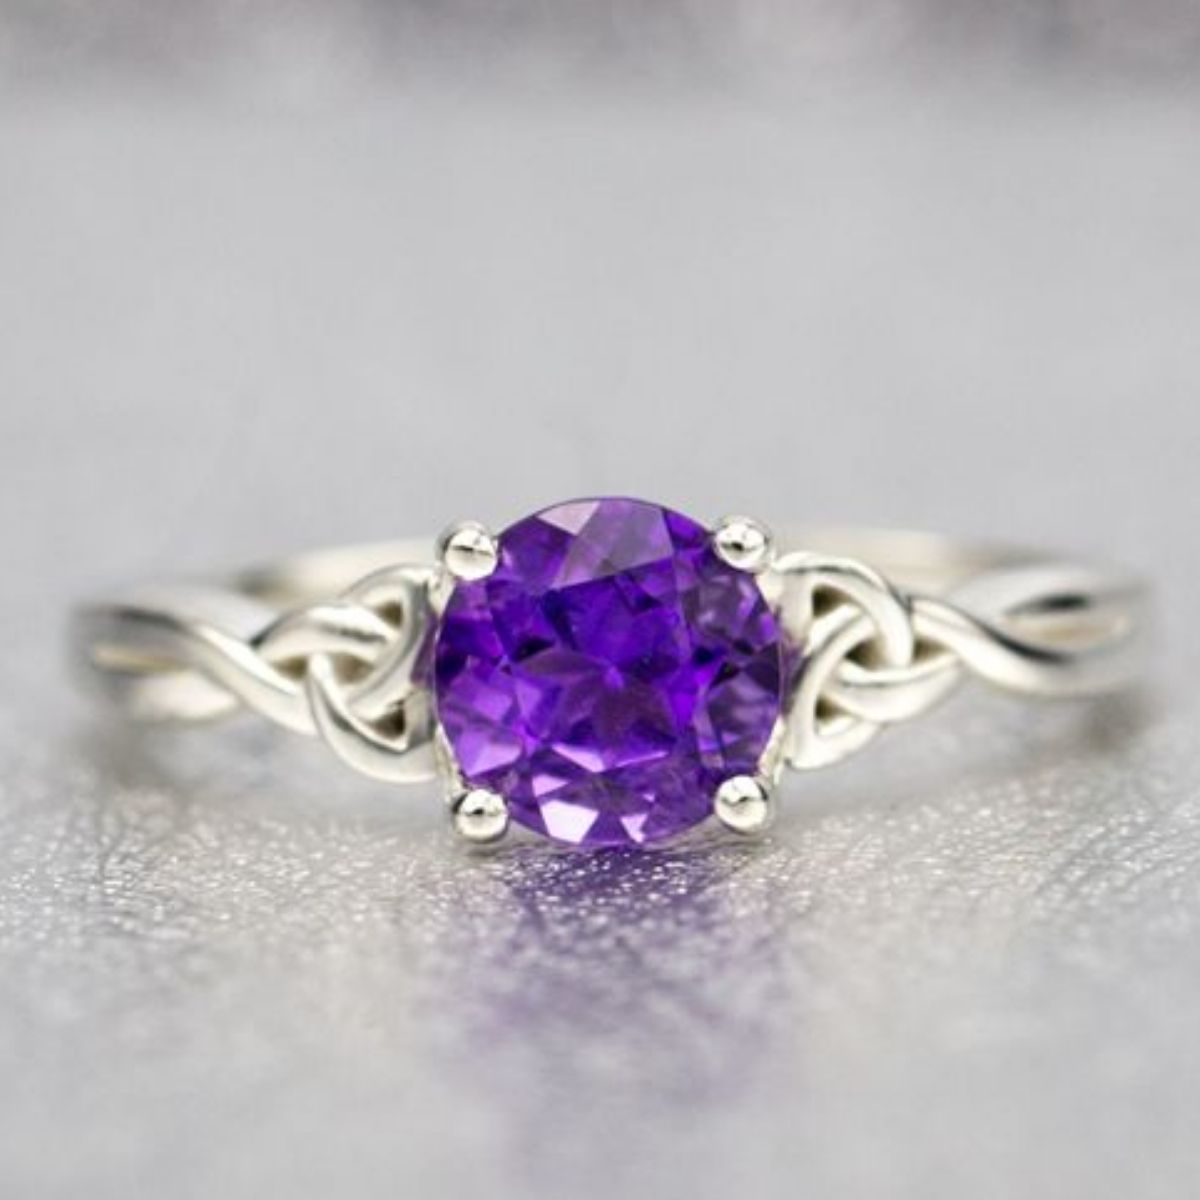 gift engagement size zircon ring purple women victoria item jewelry wieck choucong rings amethyst sterling accessories band simulated in us silver from wedding diamond stone